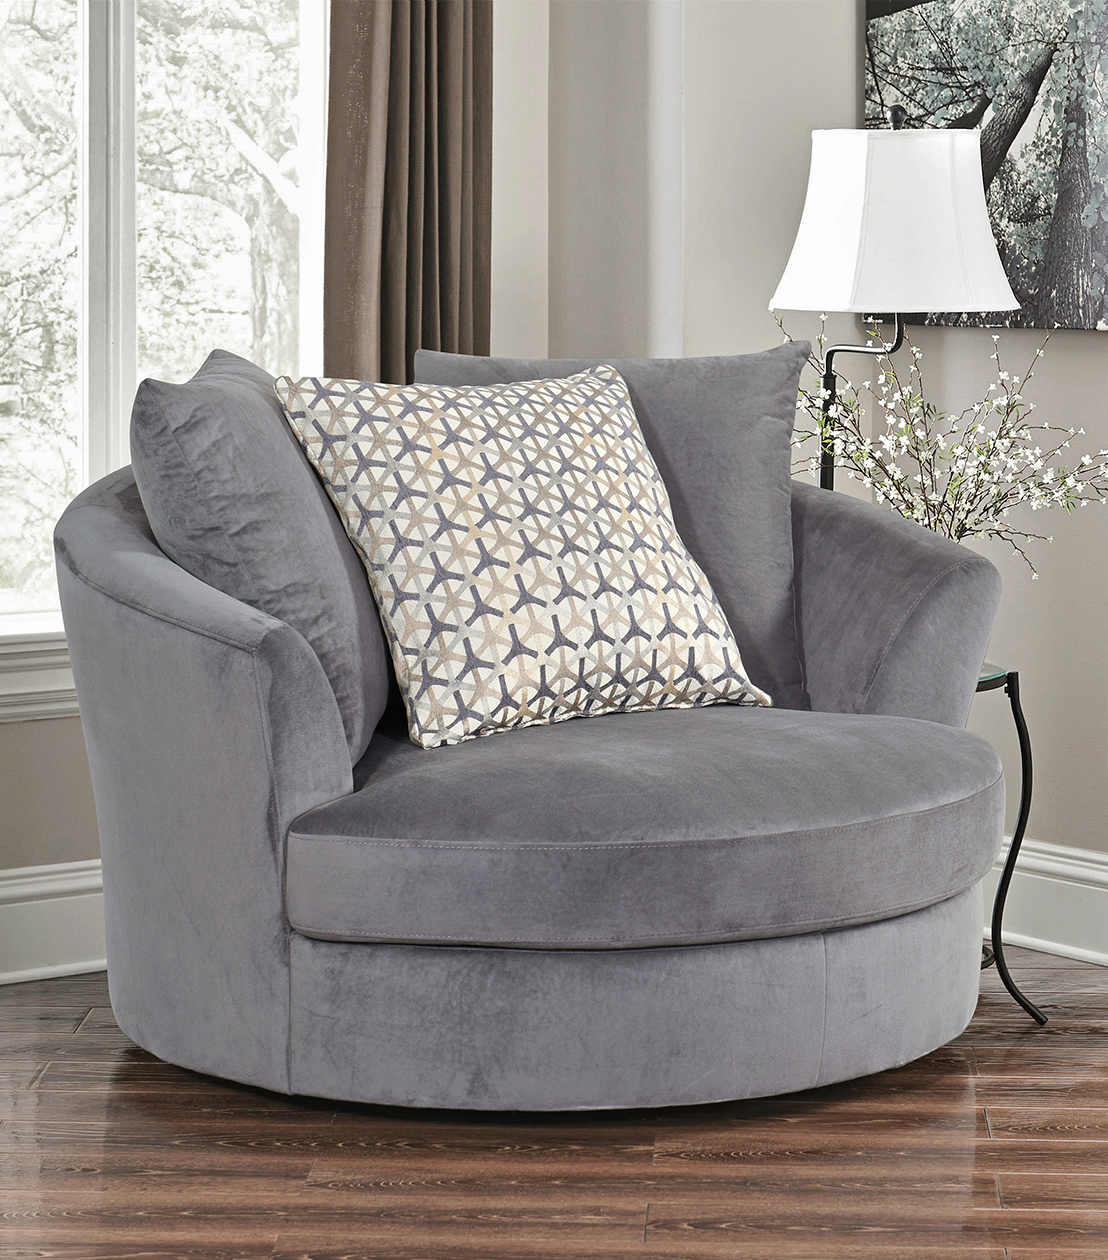 Chairs : Tanya Swivel Chair, Grey Regarding Grey Swivel Chairs (View 3 of 20)